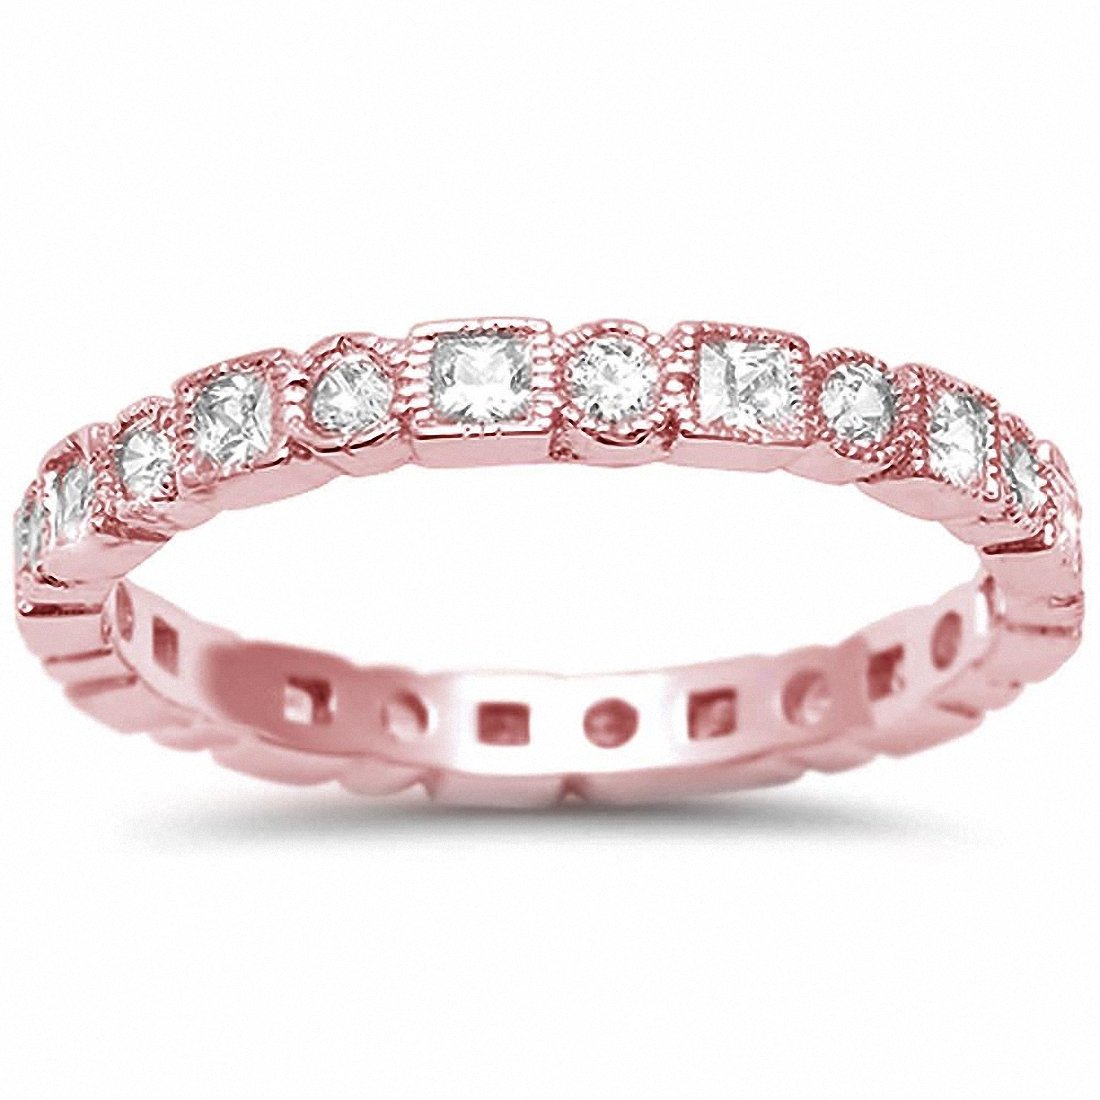 Bezel Set Full Eternity Ring Rose Tone, Simulated CZ 925 Sterling Silver